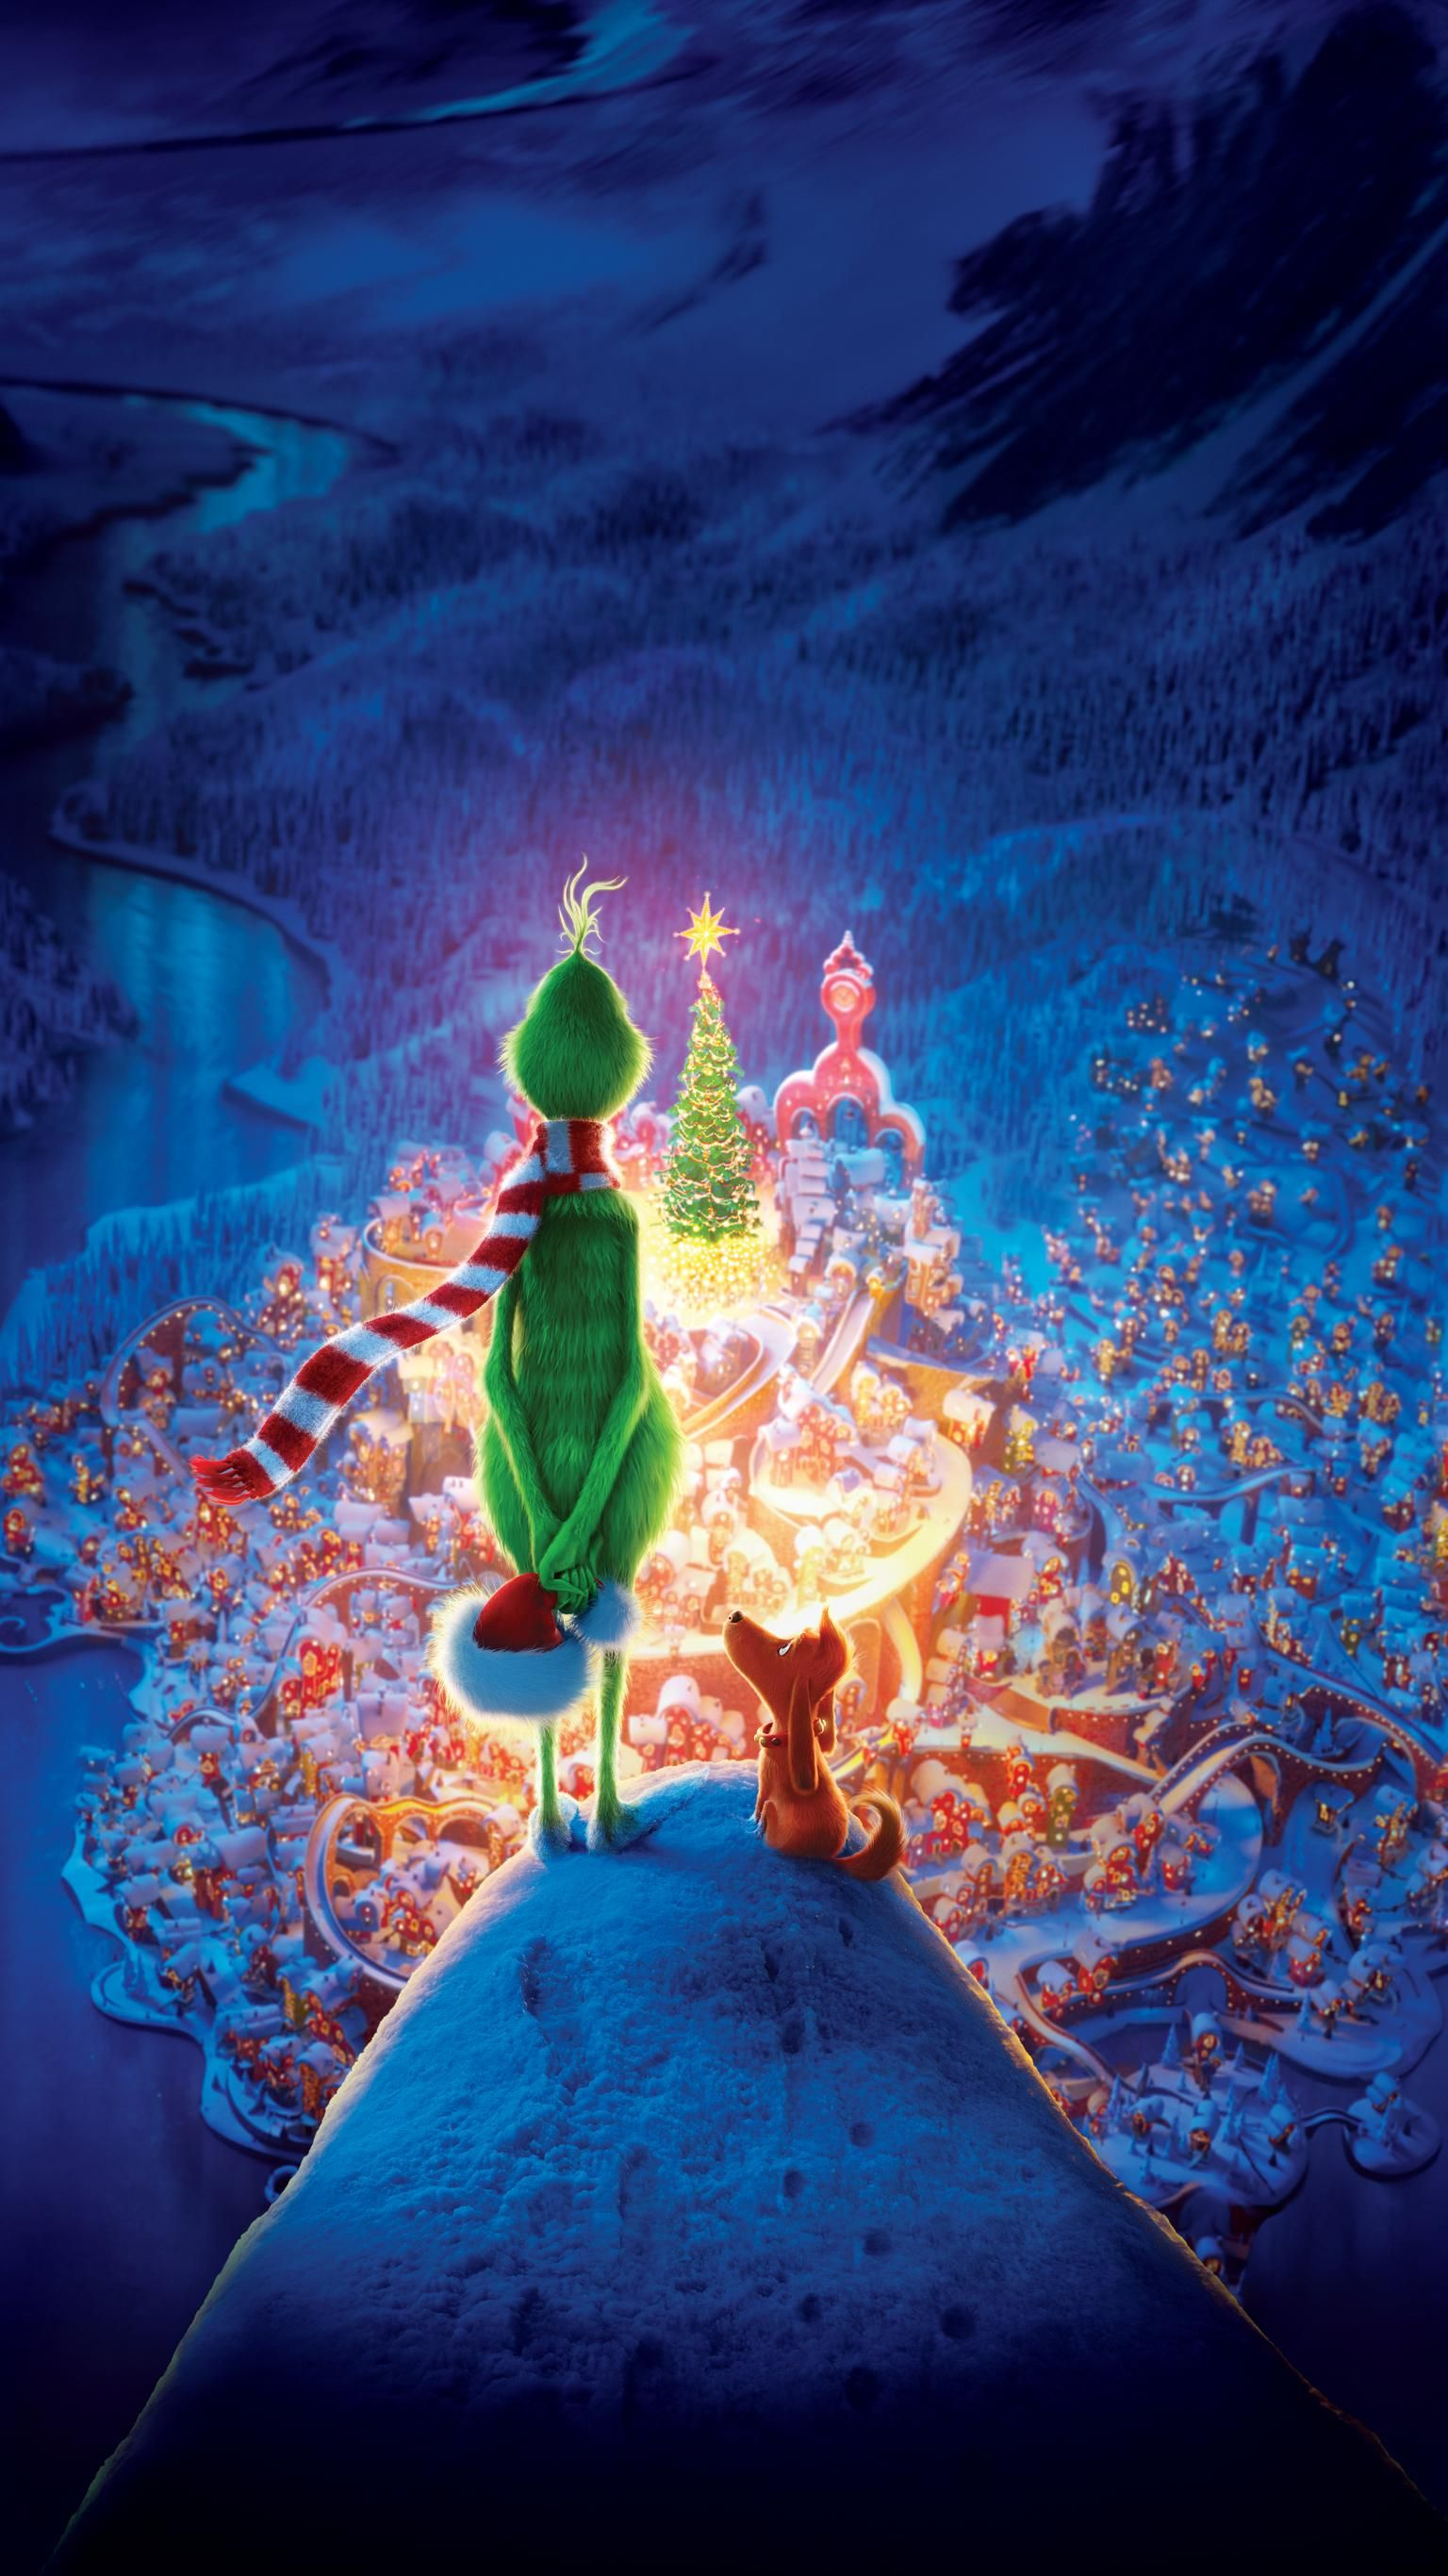 The Grinch 2018 Phone Wallpaper Moviemania Christmas Wallpaper Iphone Cute Cute Christmas Wallpaper Wallpaper Iphone Christmas